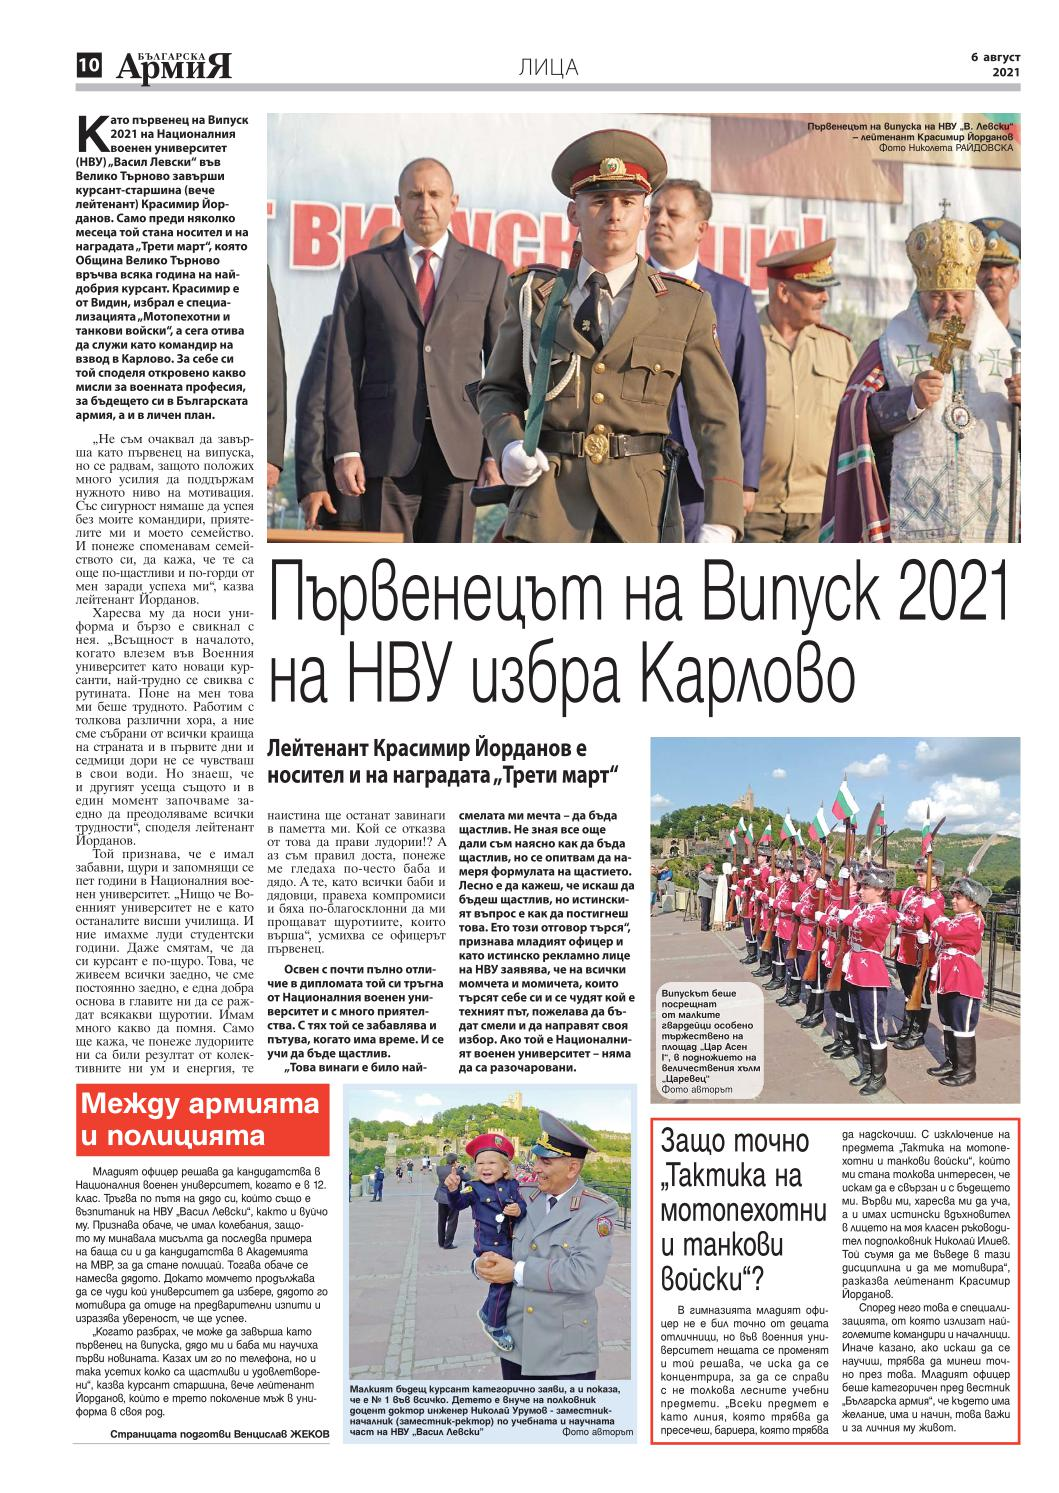 https://armymedia.bg/wp-content/uploads/2021/08/10.page1_.jpg